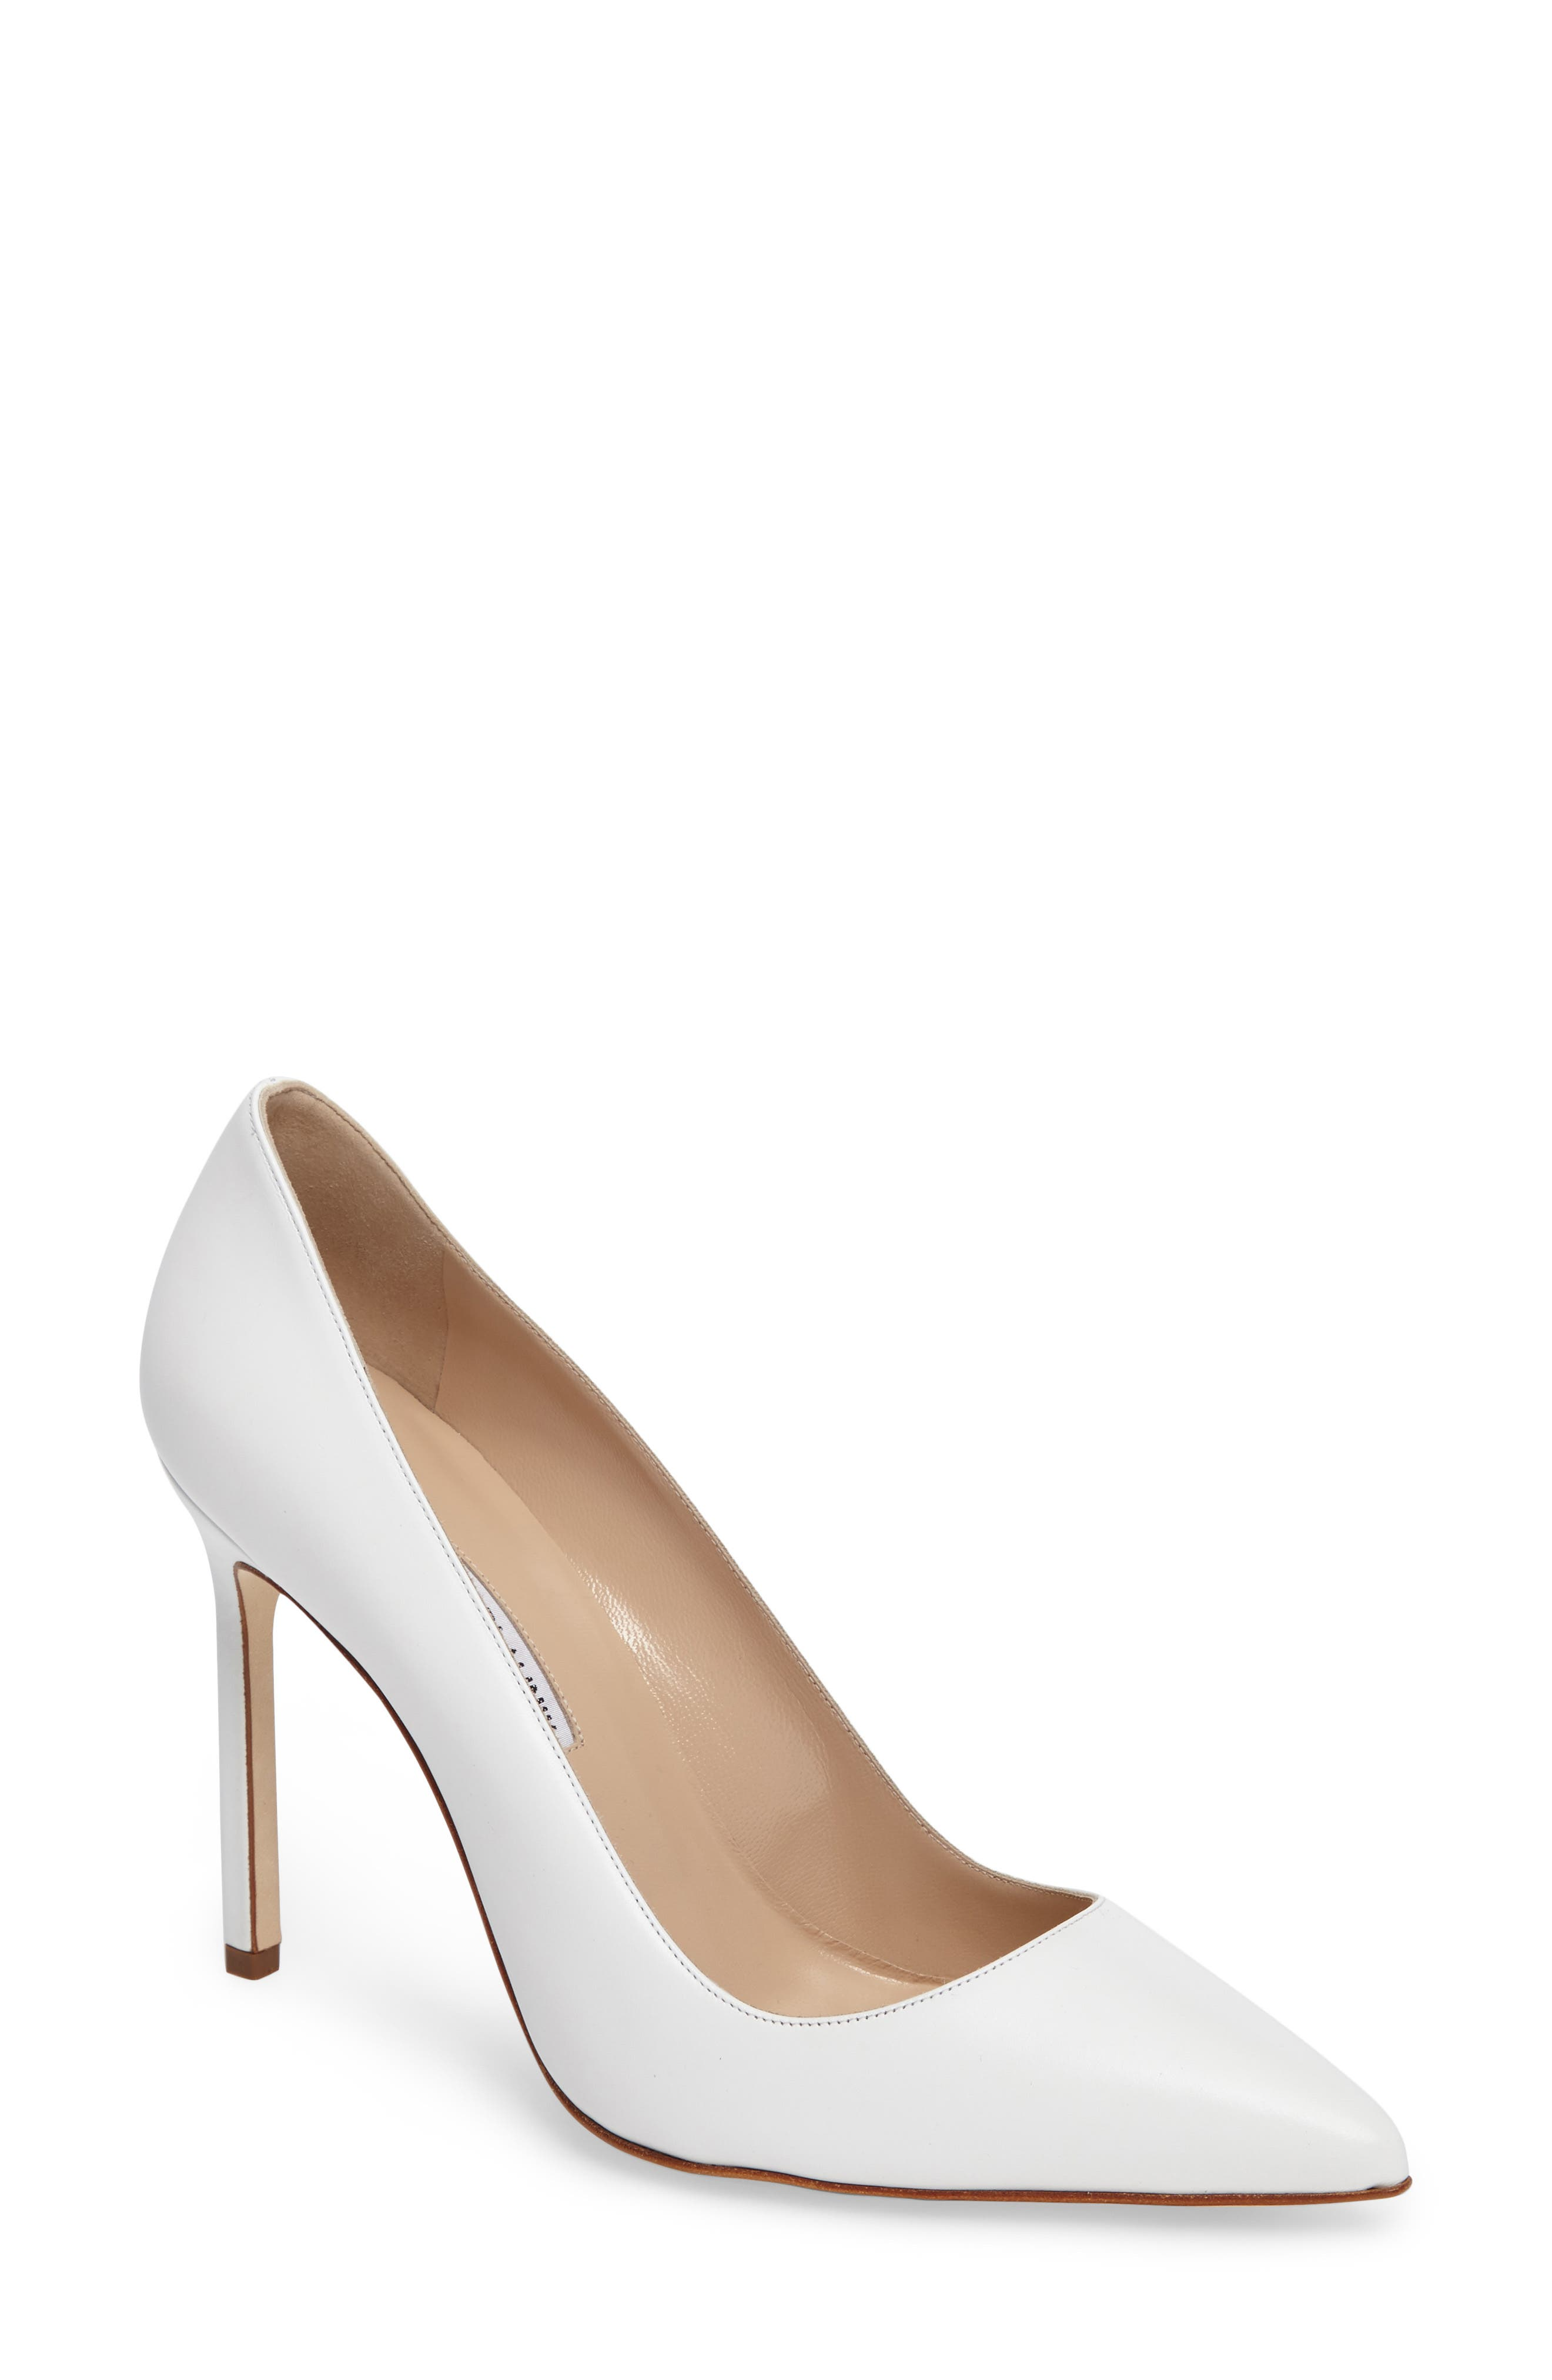 Closed Toe White Heels W5h4fHOy